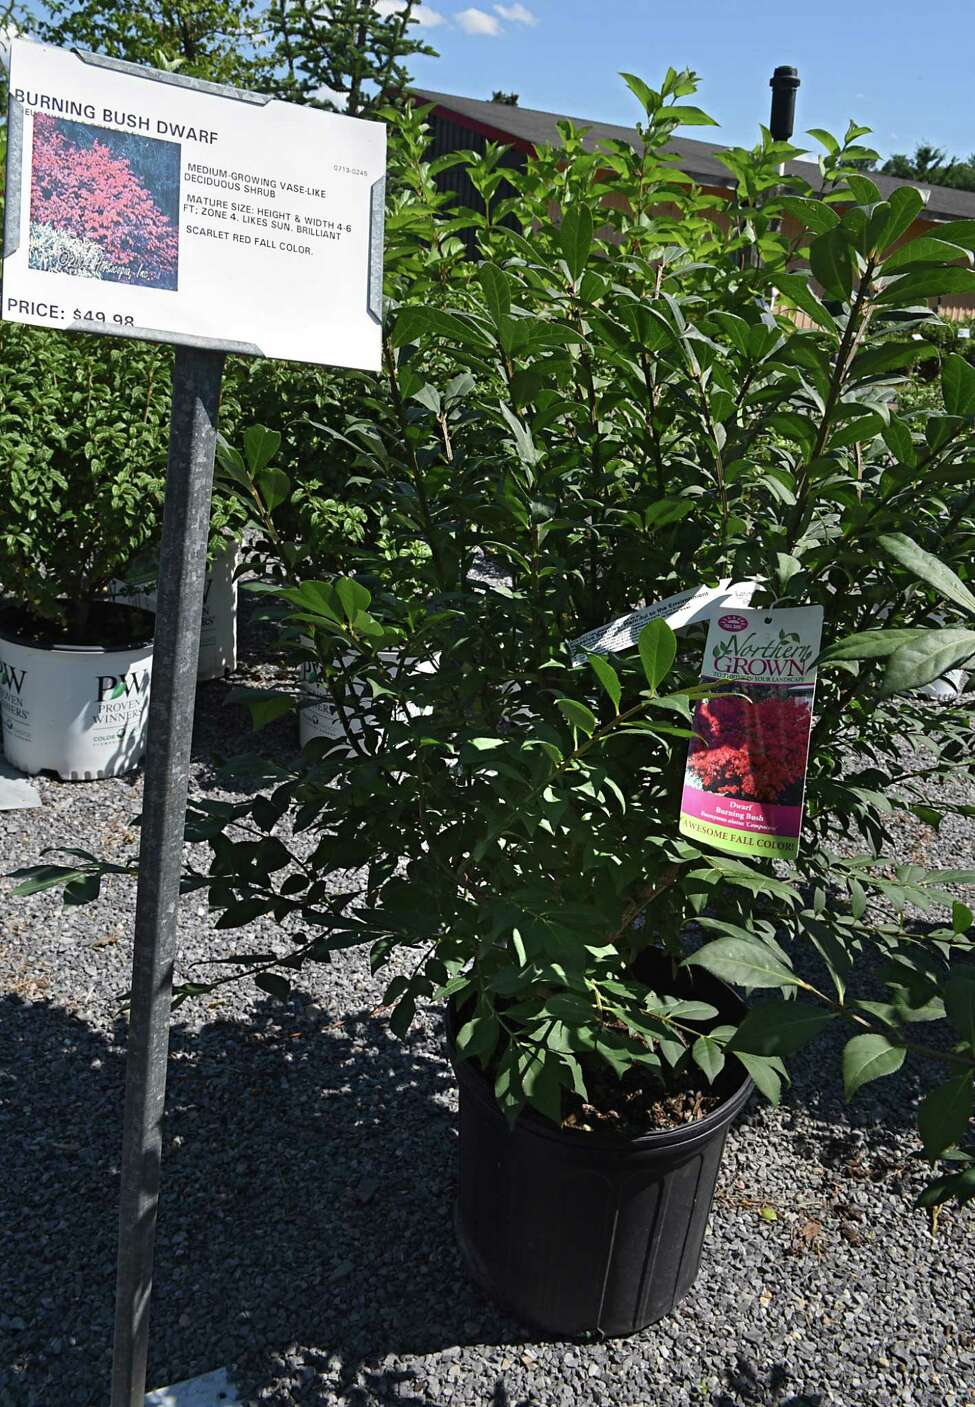 A burning bush at Faddegon's Nursery on Wednesday, July 5, 2017 in Latham, N.Y. NYS has deemed this plant an invasive species and harmful to the environment. NYS has approved a type of now-banned invasive plant for commercial sale. Called a Japanese barberry, the new version of the plant had been made sterile, and thus cannot spread. (Lori Van Buren / Times Union)